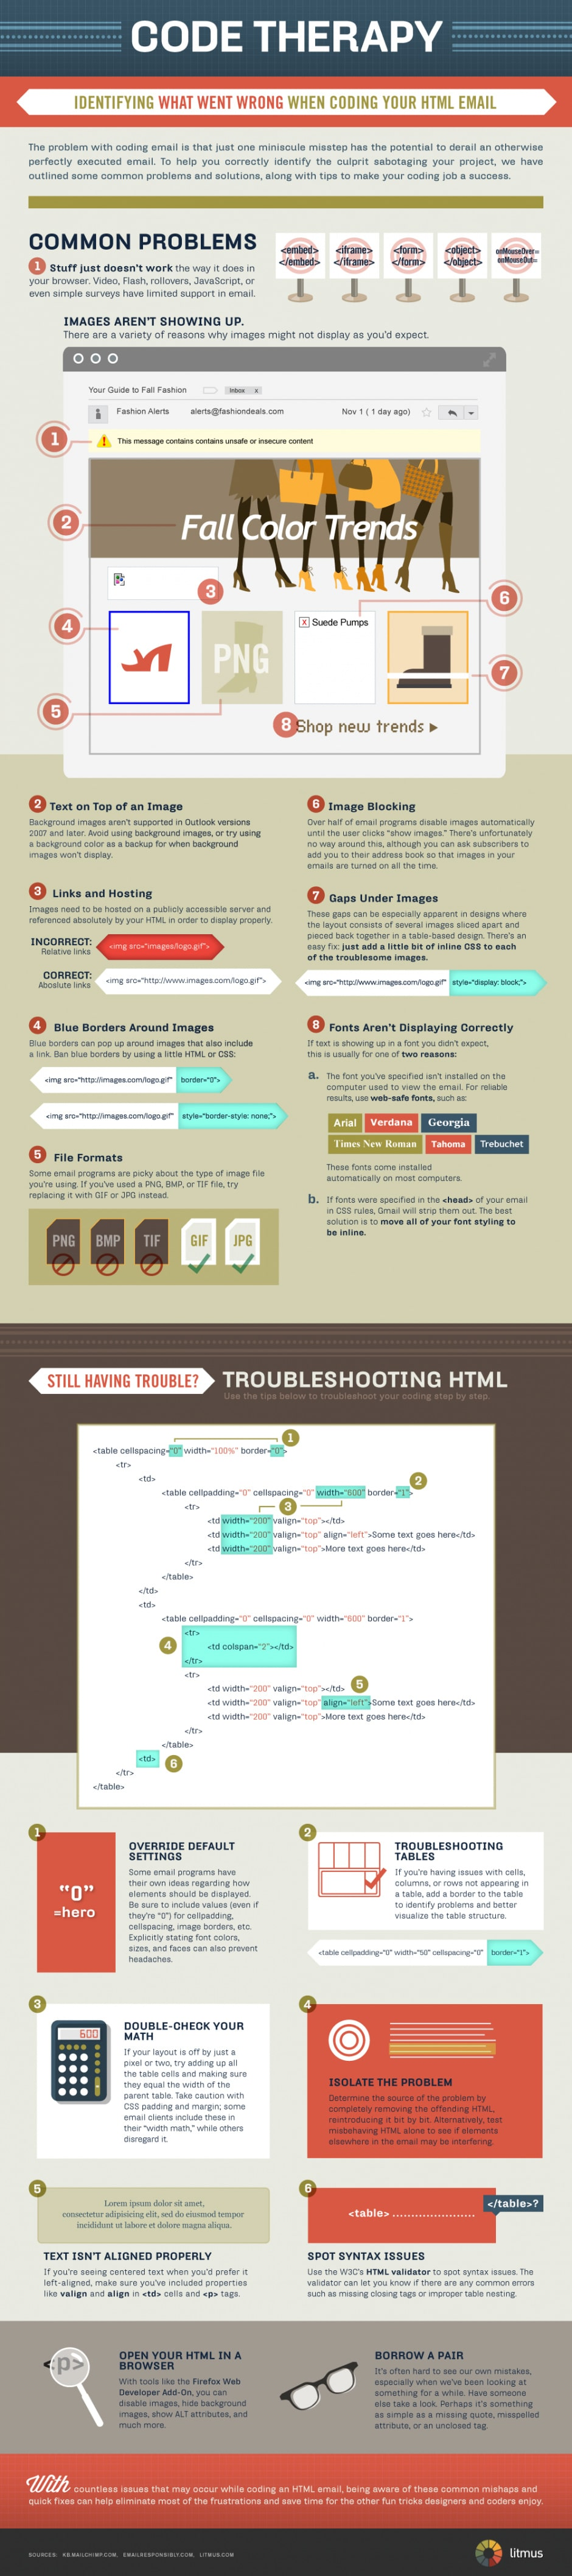 HTML-Bug-Fight-Email-Tips